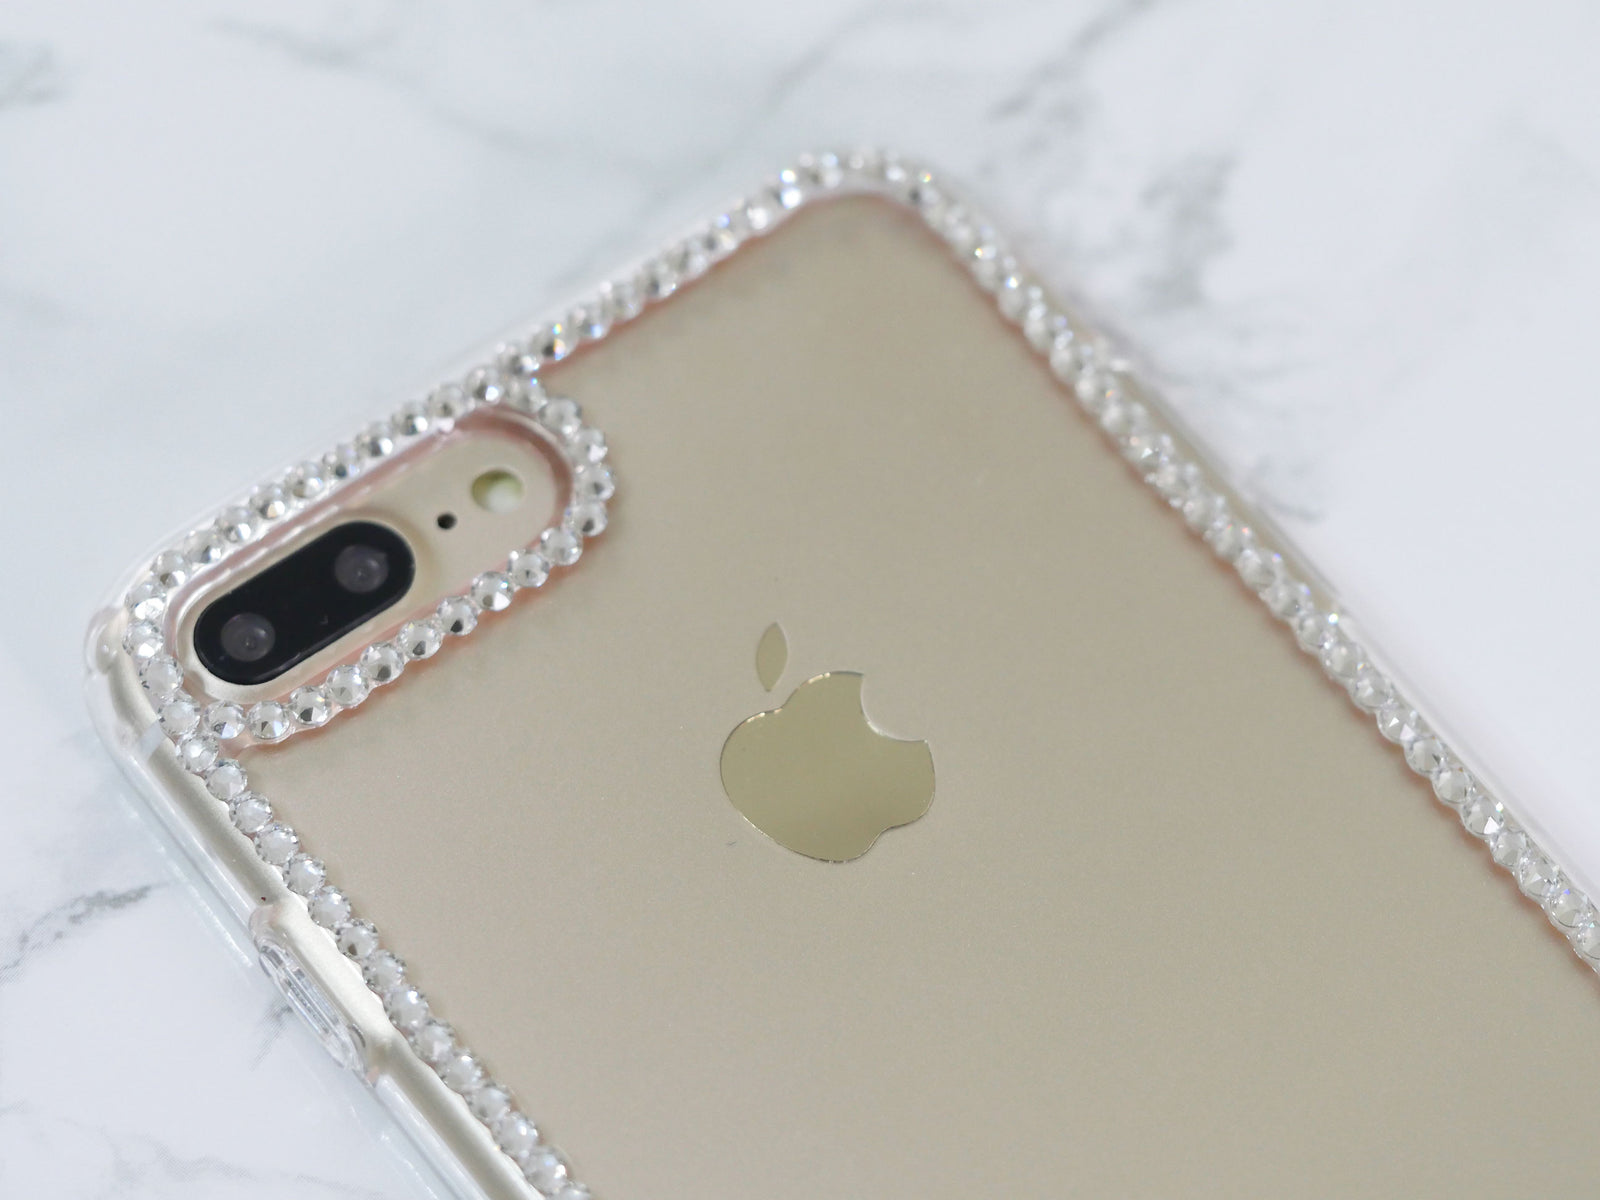 Apple iPhone 11 Pro Swarovski Crystal Cases